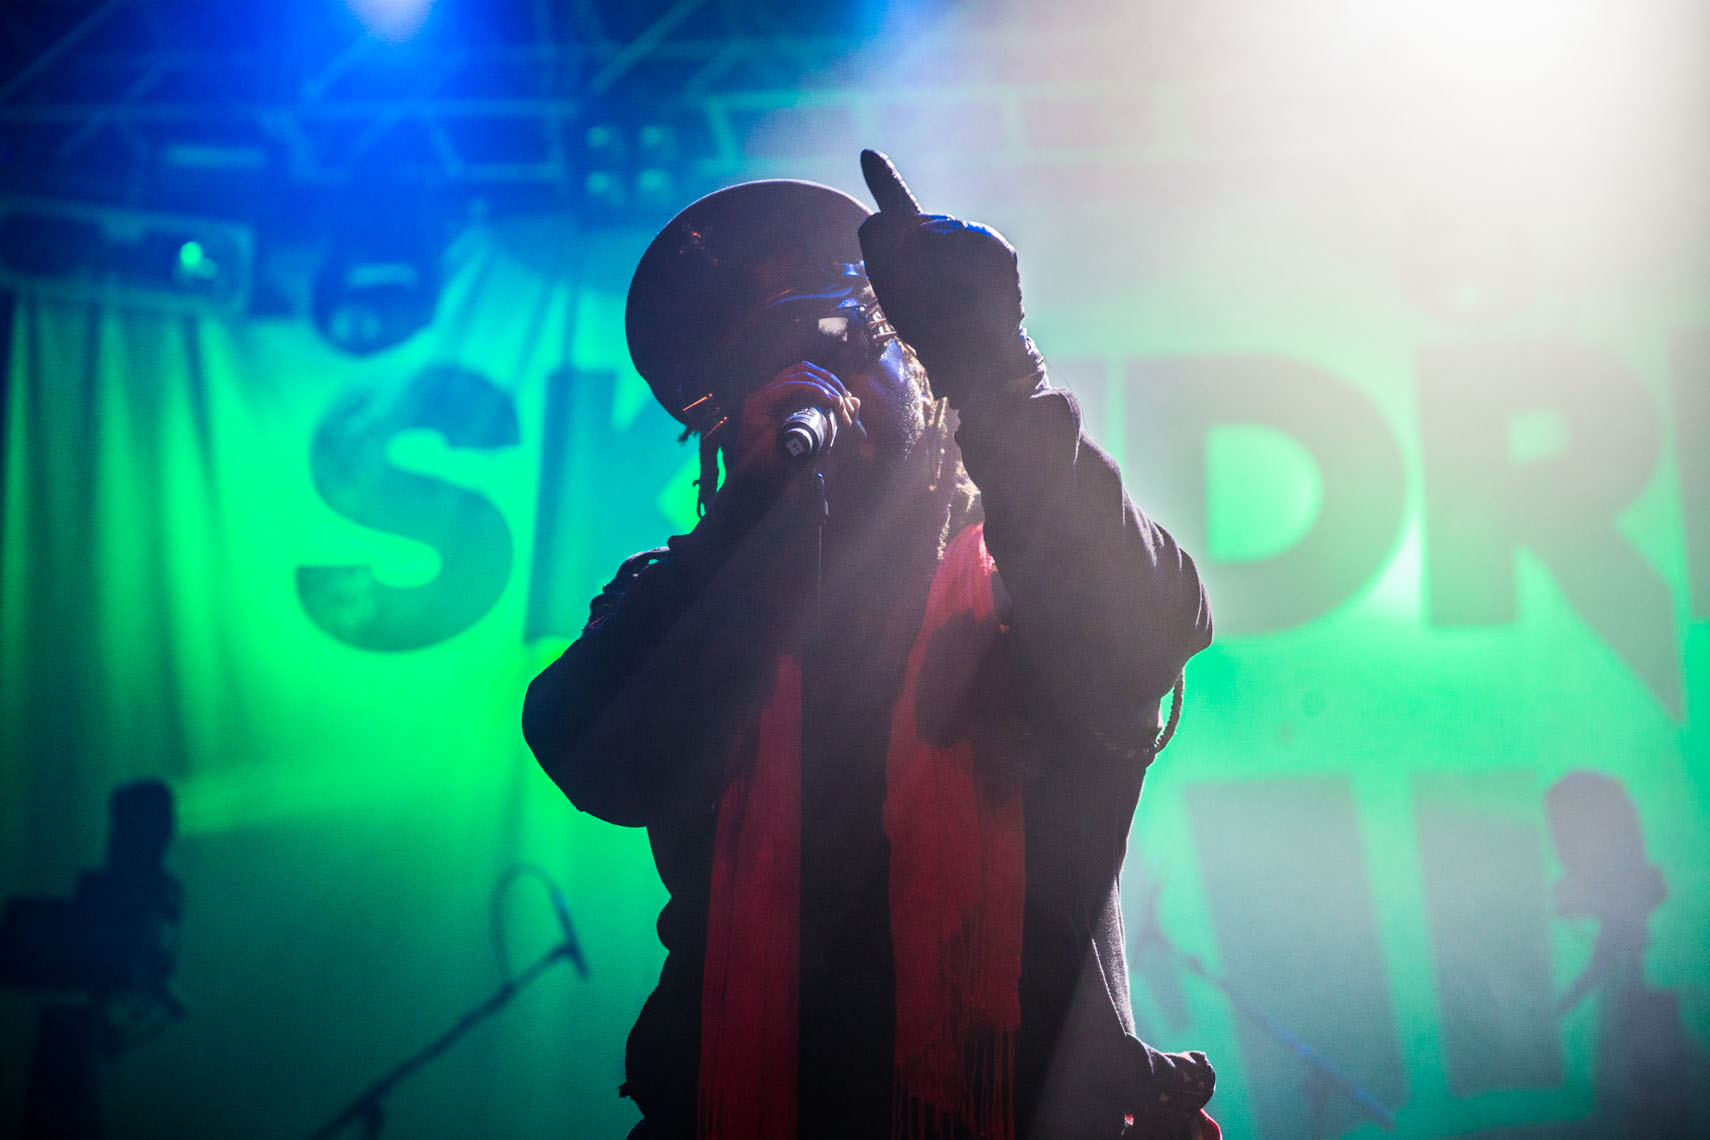 Skindred_London-2617-DUP.jpg